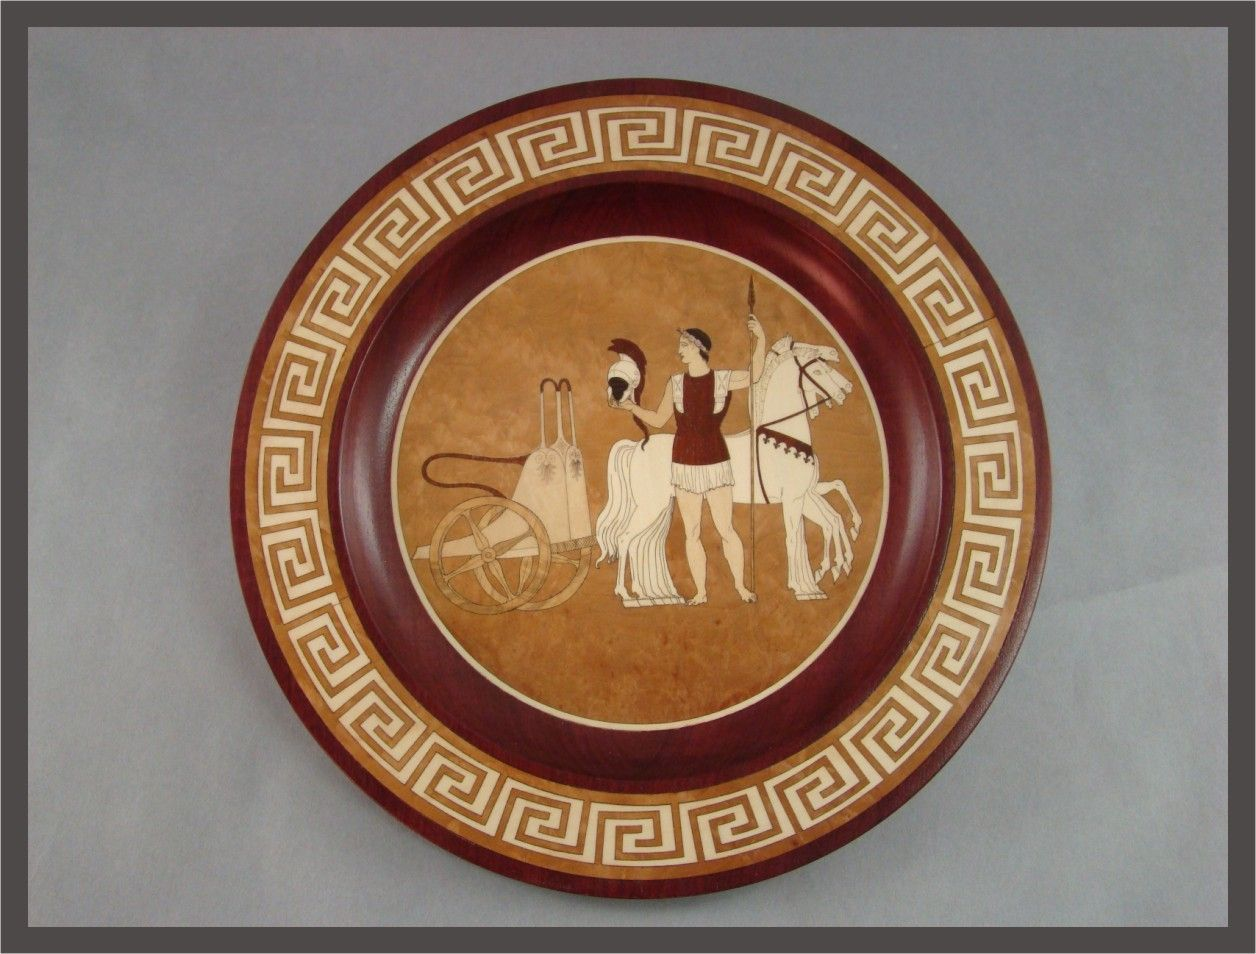 Hand Made Greek Plate By Mwb Studios Custommade Com